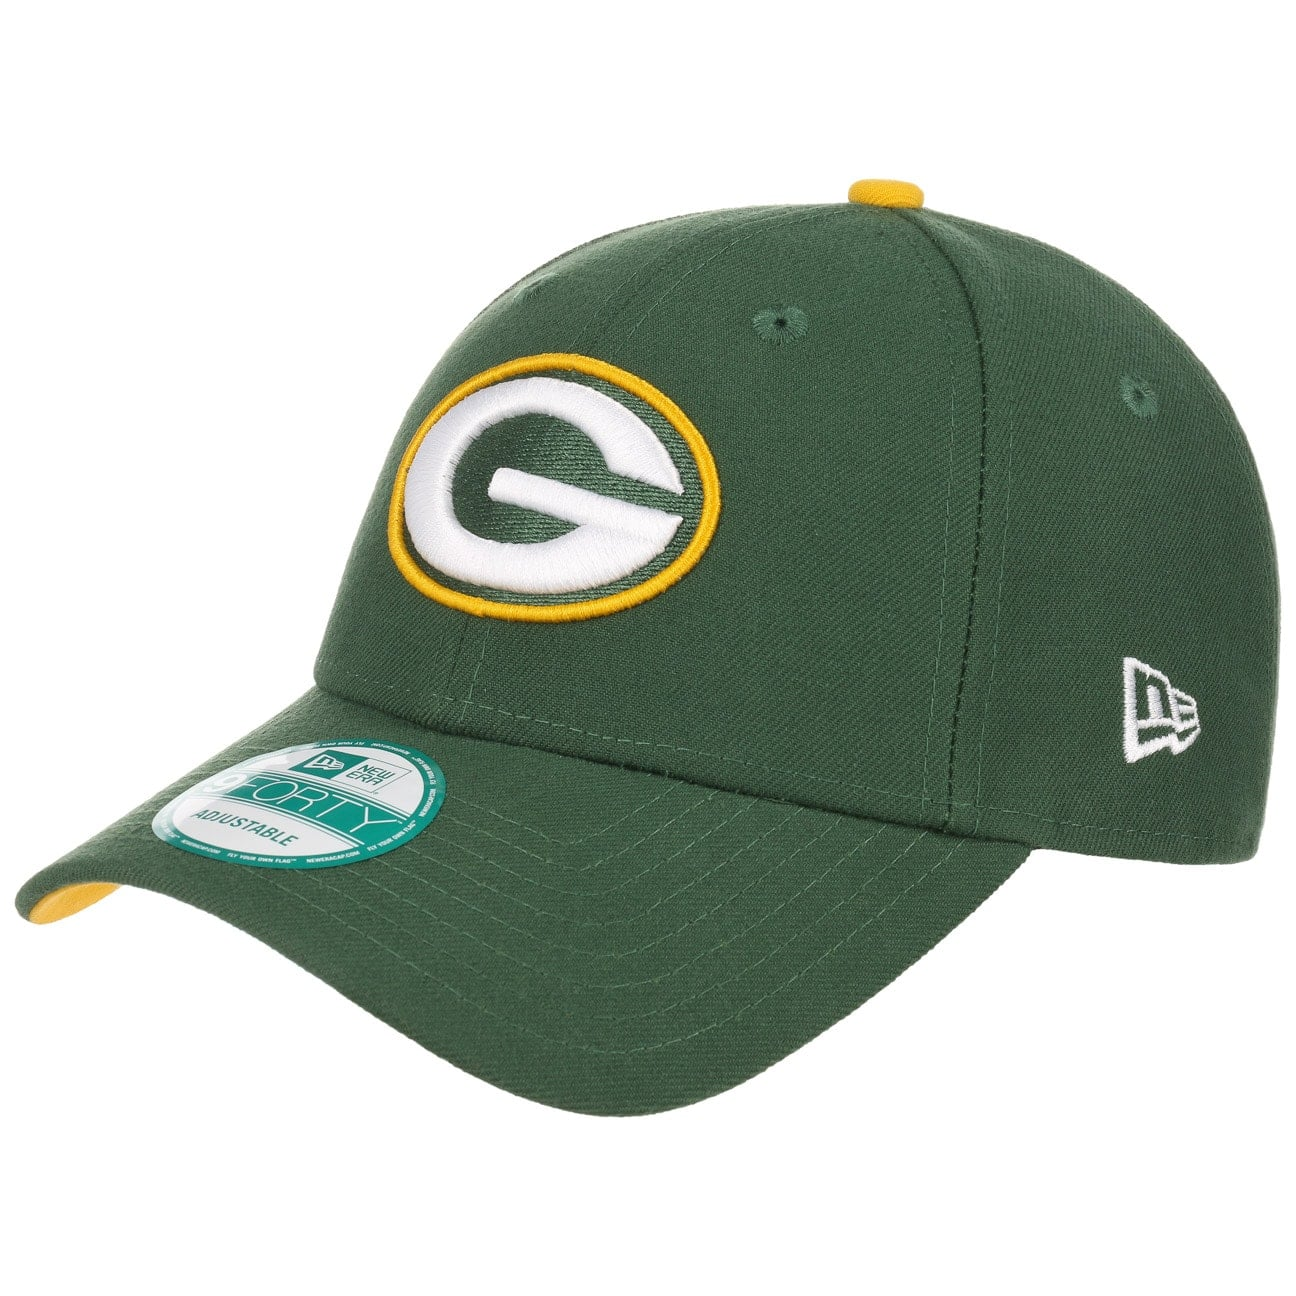 9Forty Green Bay Packers Cap by New Era - Gorras - sombreroshop.es 4f4f3a025aa